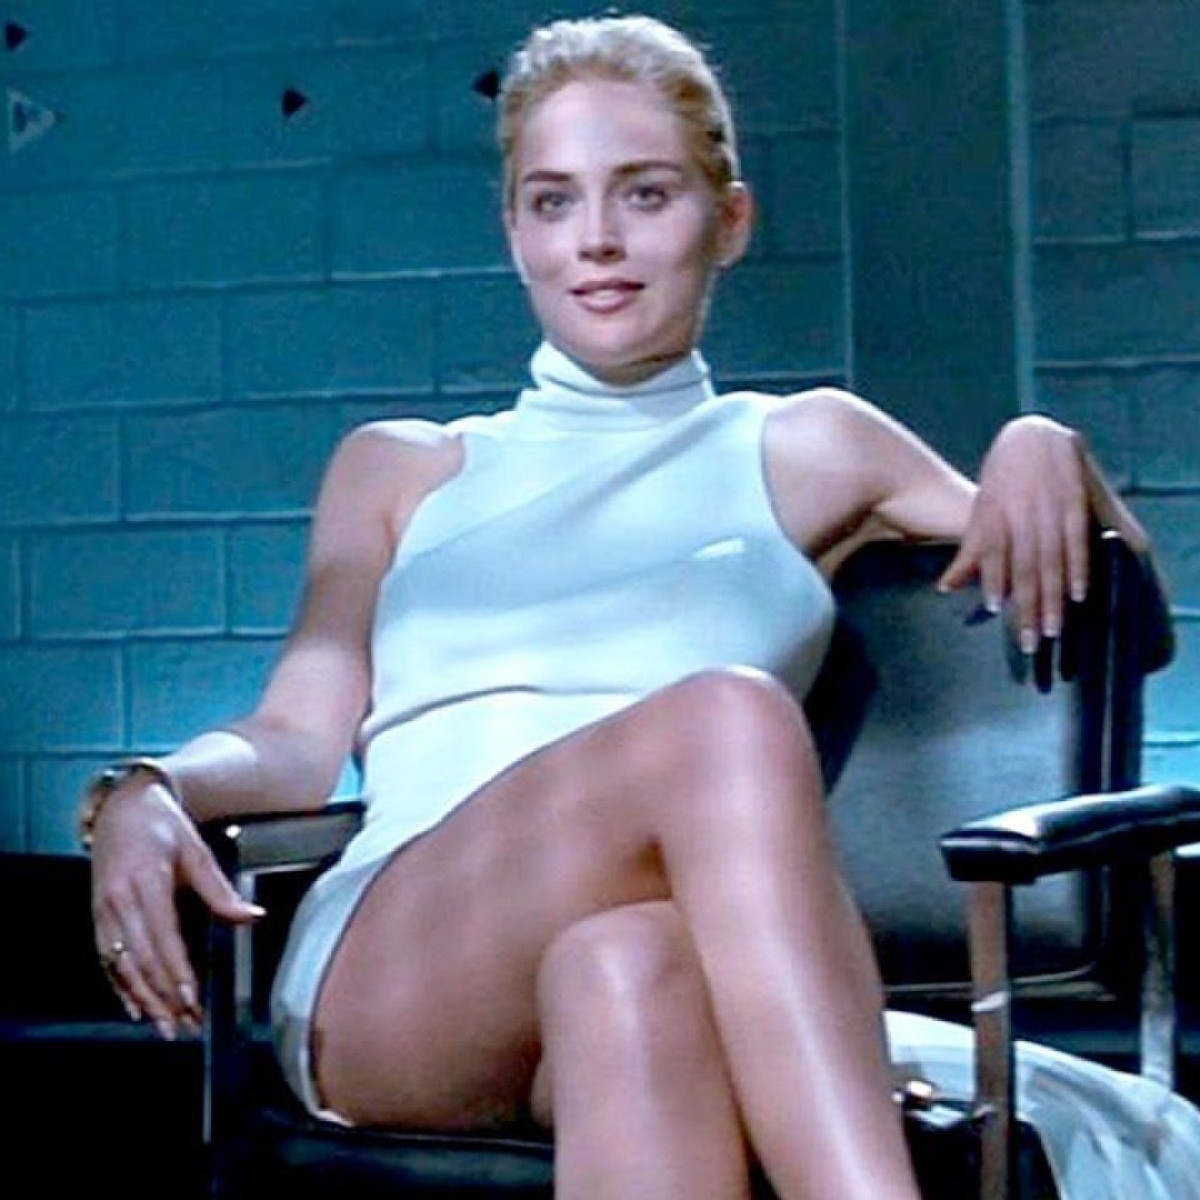 'I saw my vagina-shot after...': Sharon Stone says she had no idea her genitals would be visible in 'Basic Instinct'